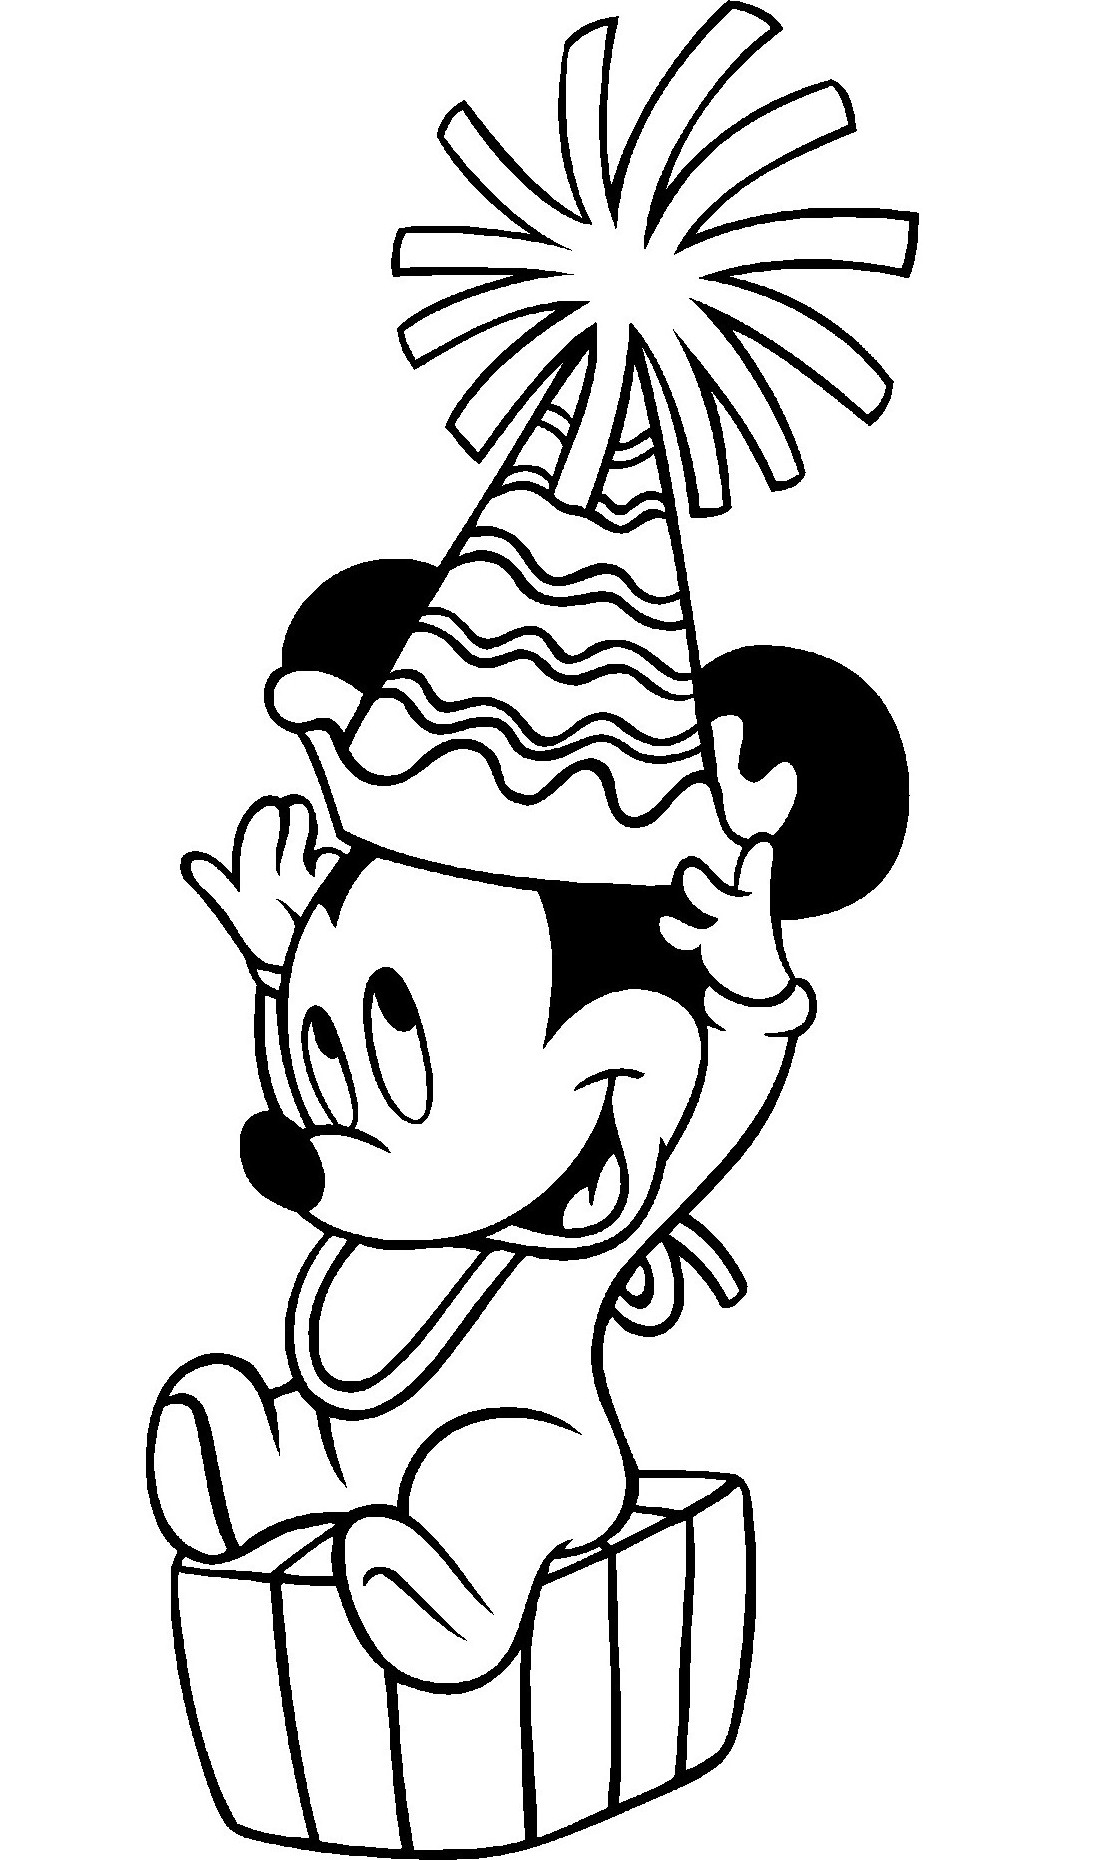 mickey mouse printable coloring pages - photo#33